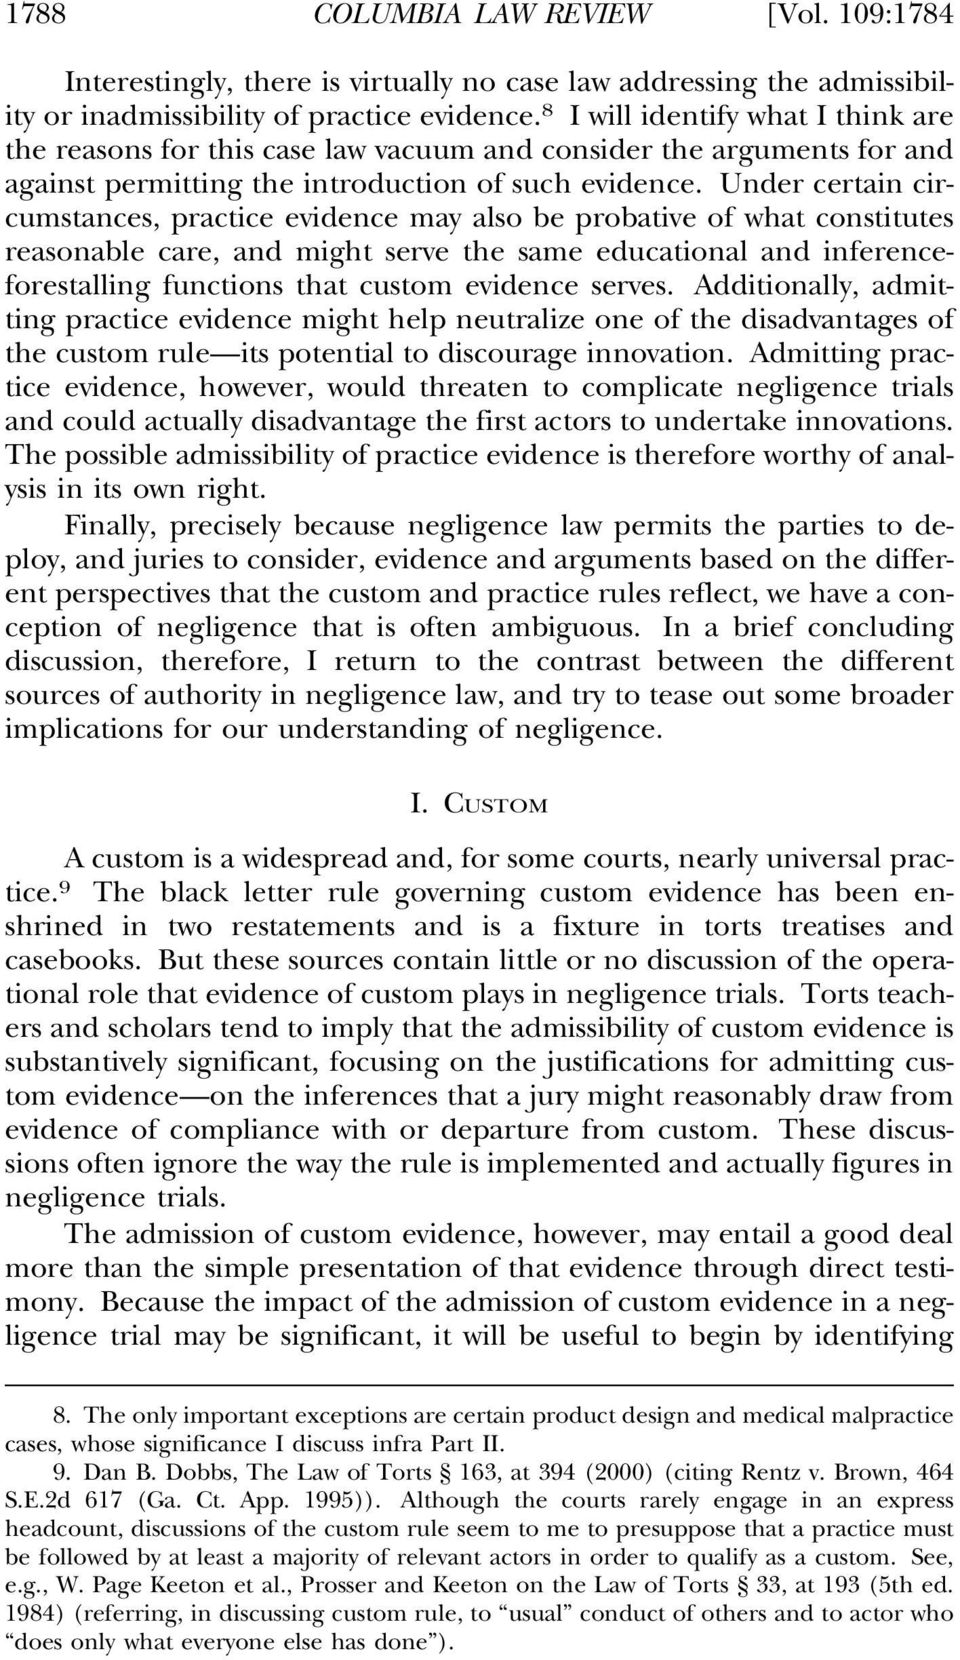 Under certain circumstances, practice evidence may also be probative of what constitutes reasonable care, and might serve the same educational and inferenceforestalling functions that custom evidence